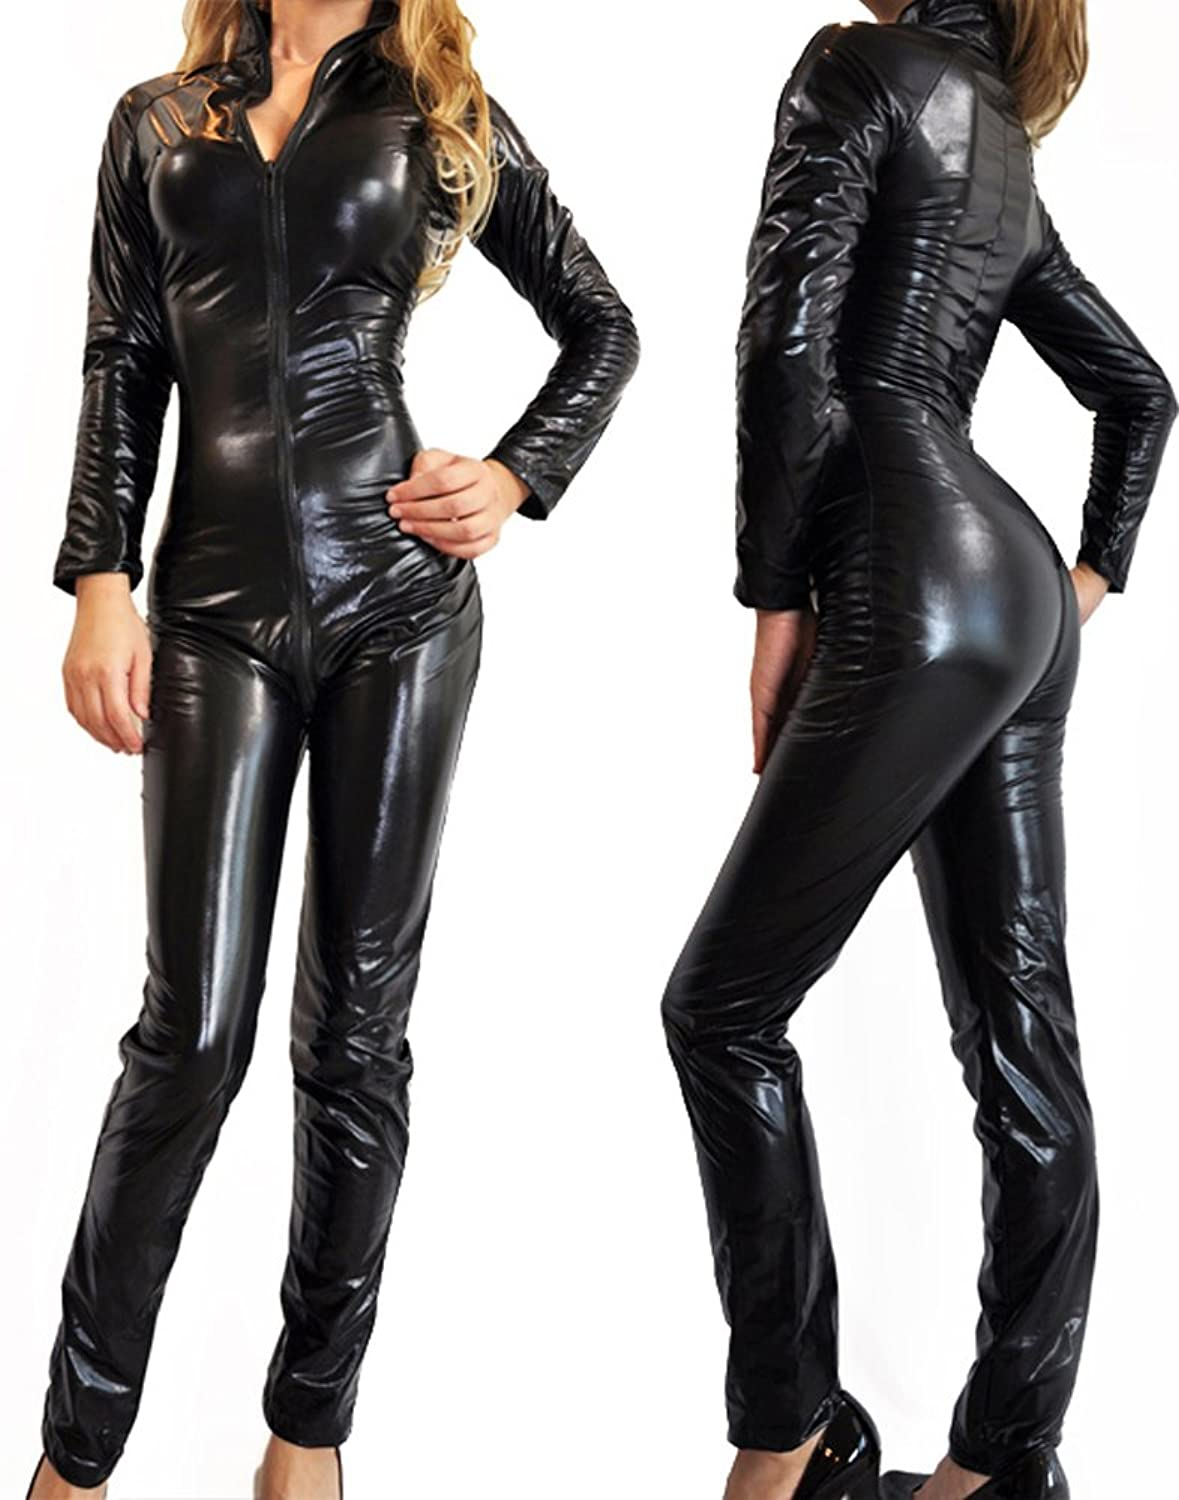 Gothic Black Wet Look Metallic Bodysuit Superhero Costume-Reg and Plus Size